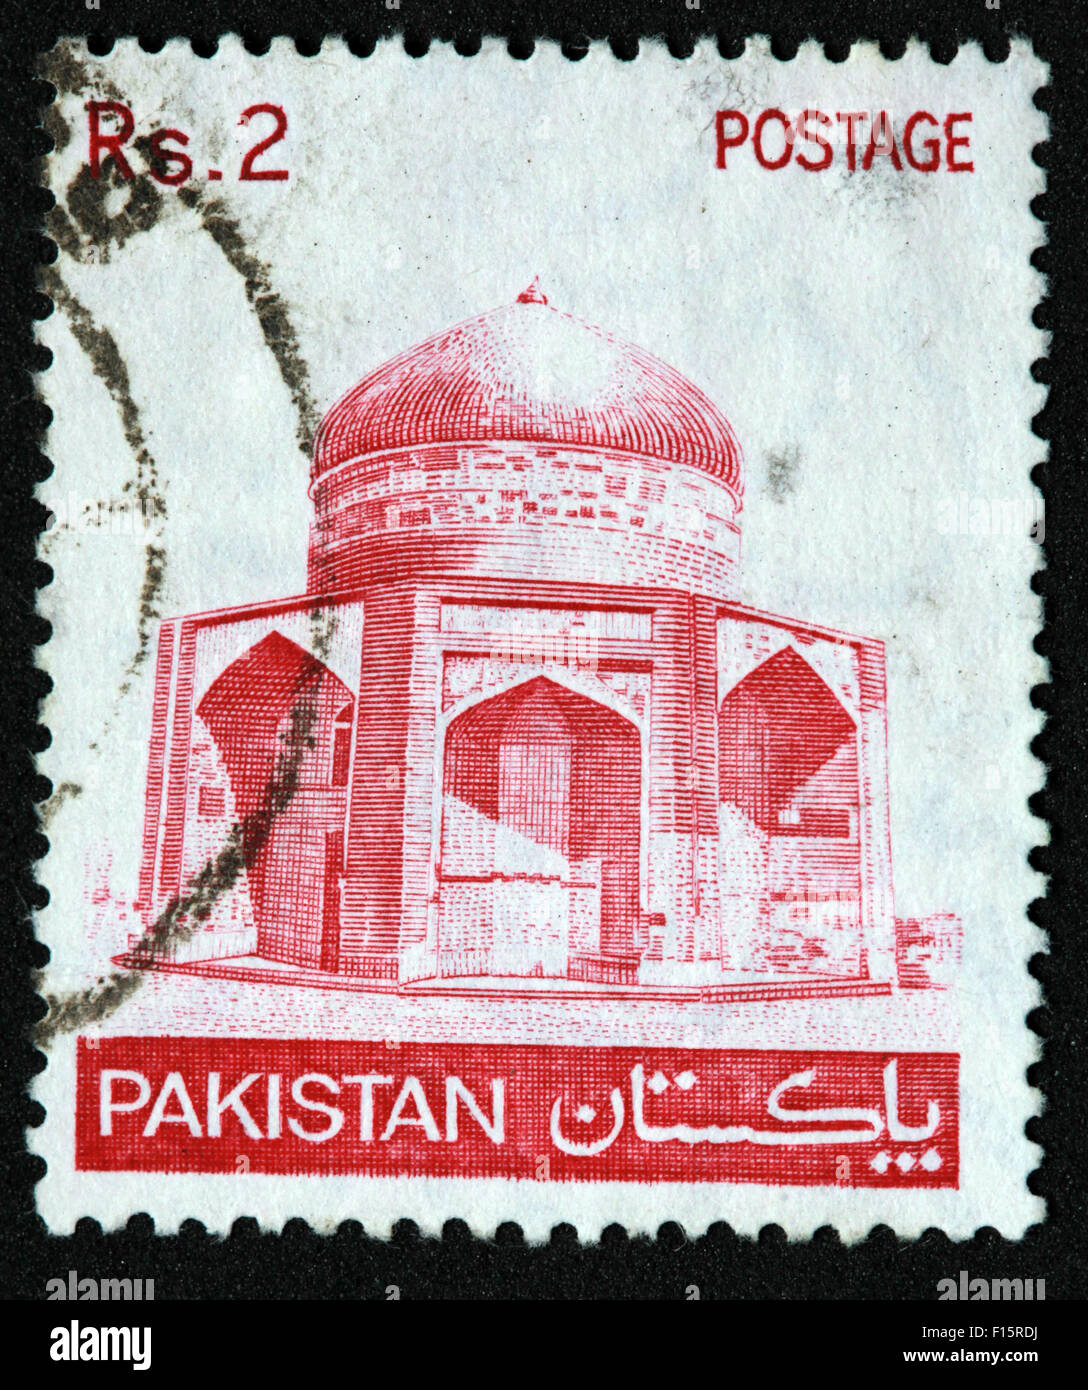 Pakistan Postage Rs2 rs red mosque Stamp - Stock Image